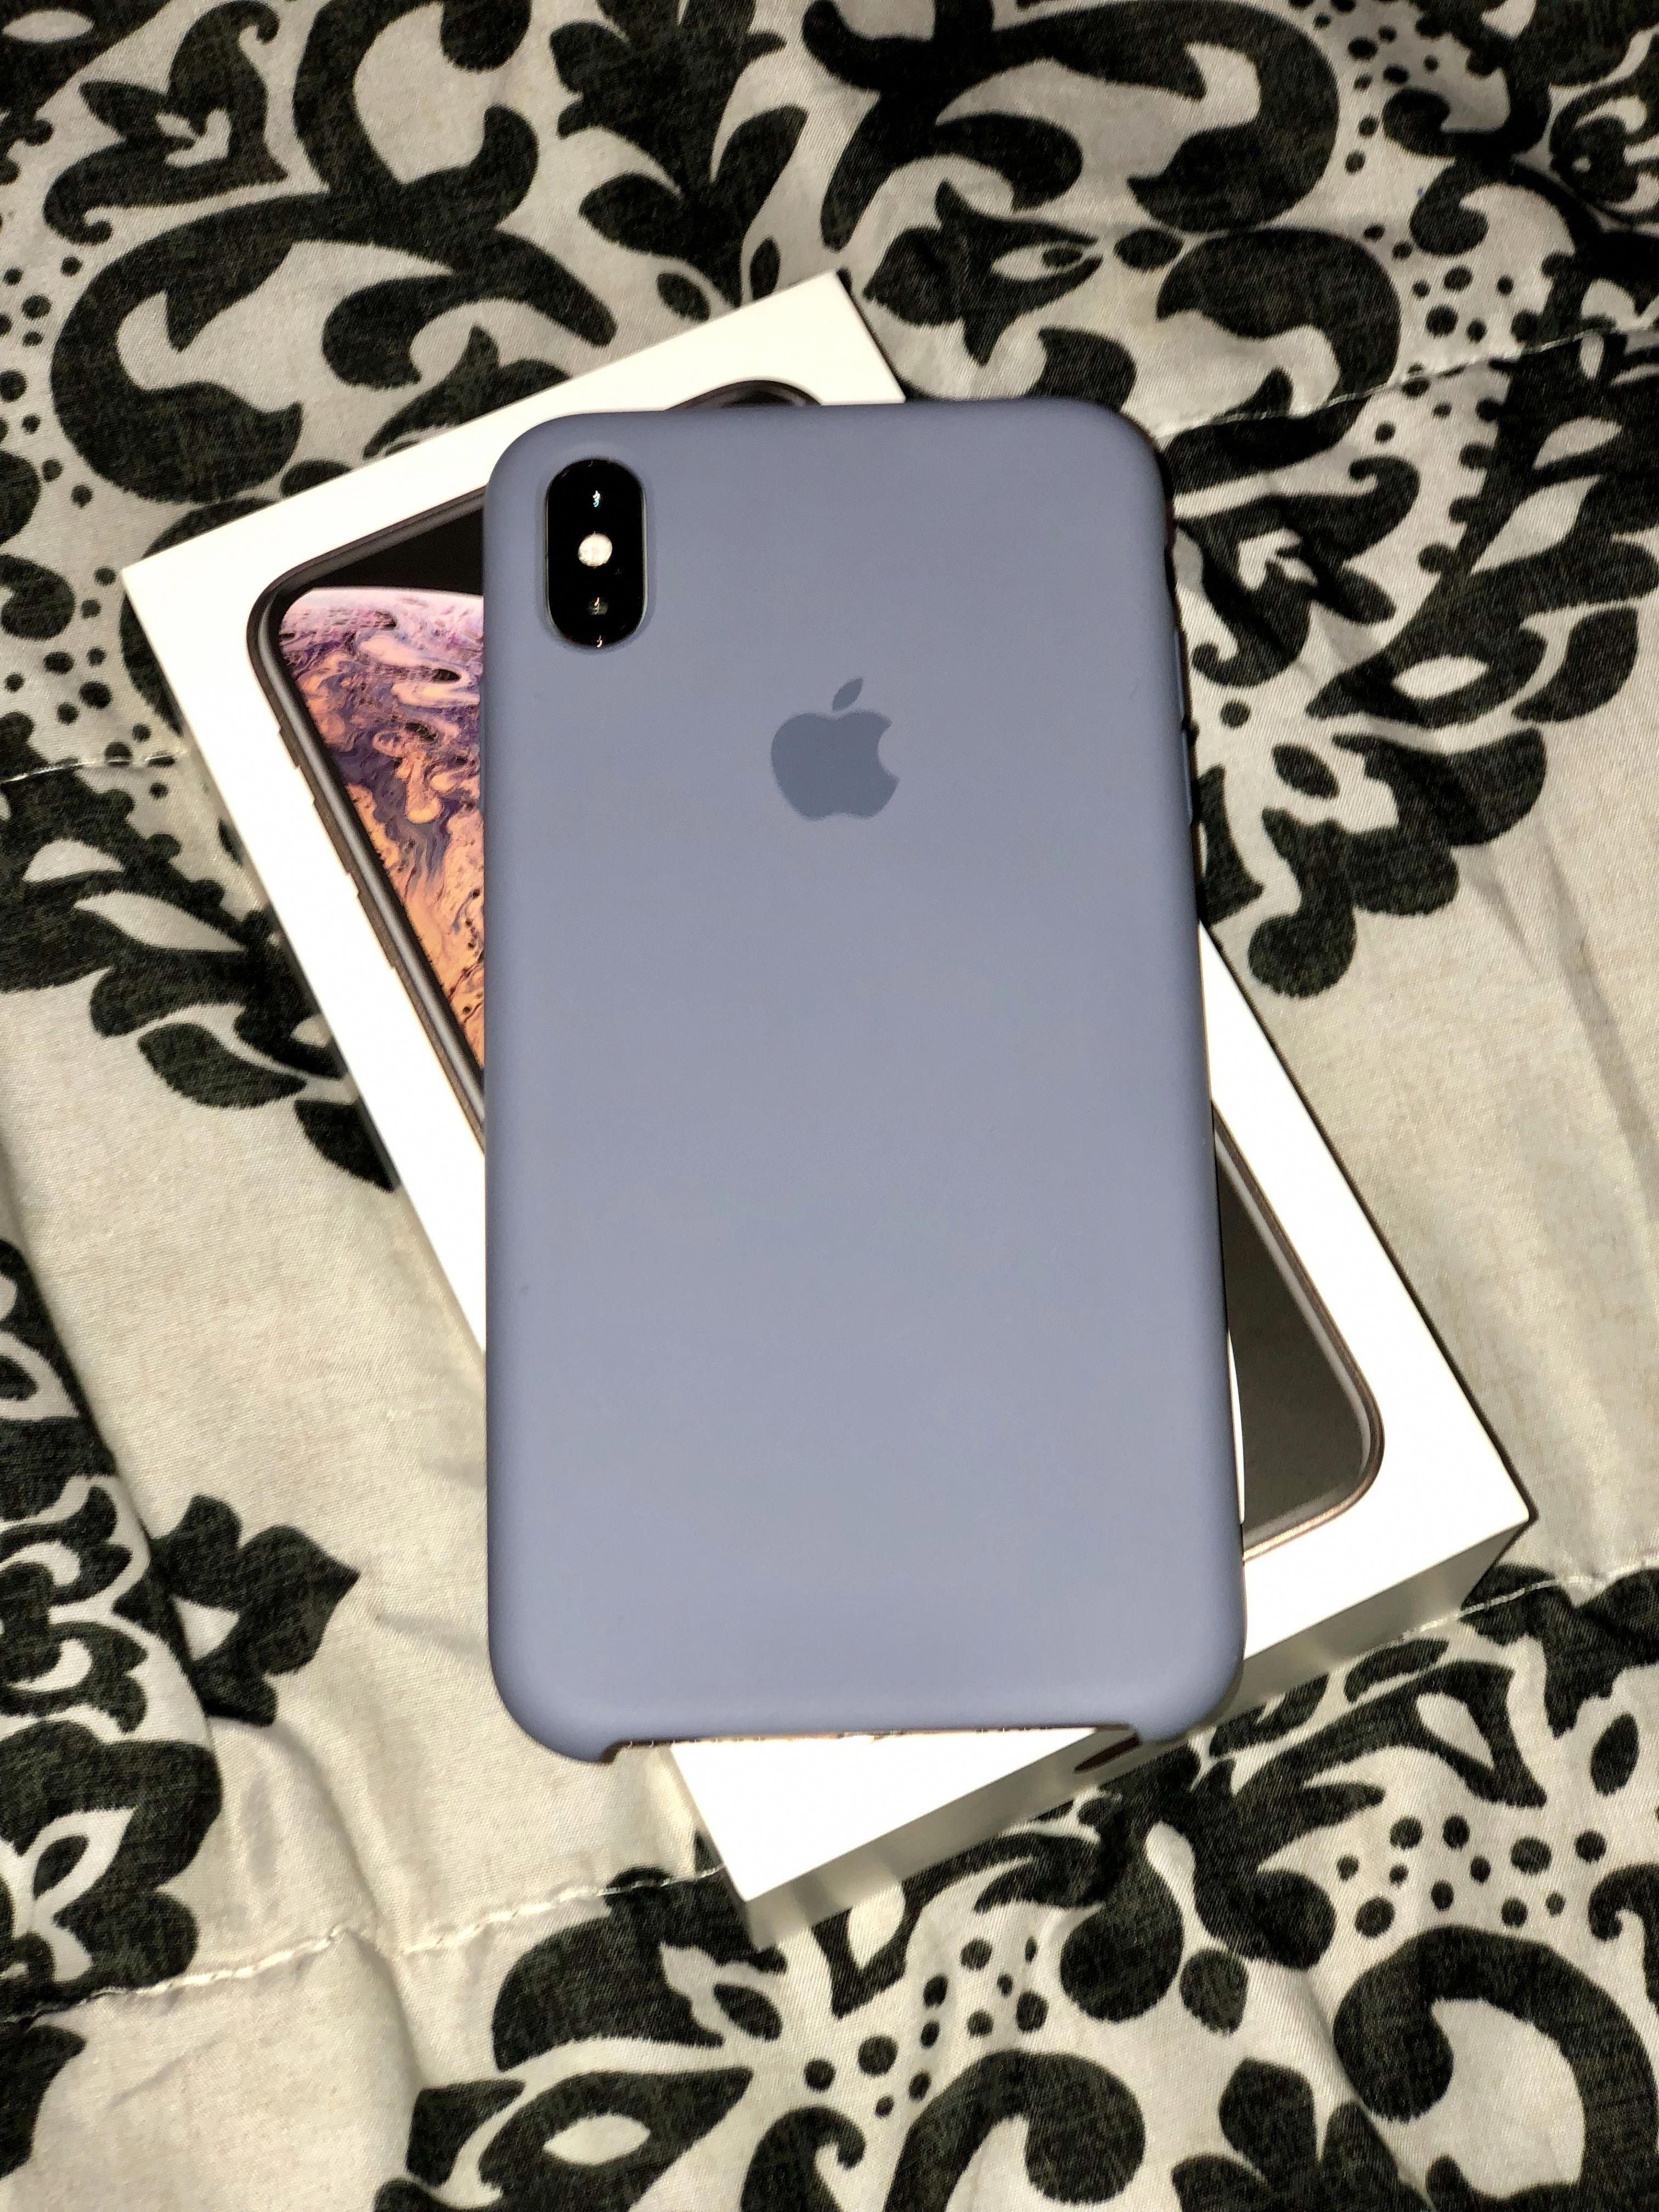 Apple Silicone Case Lavender Gray For Iphone Xs Max Iphonexsmax Iphone Apple Phone Case Iphone Accessories